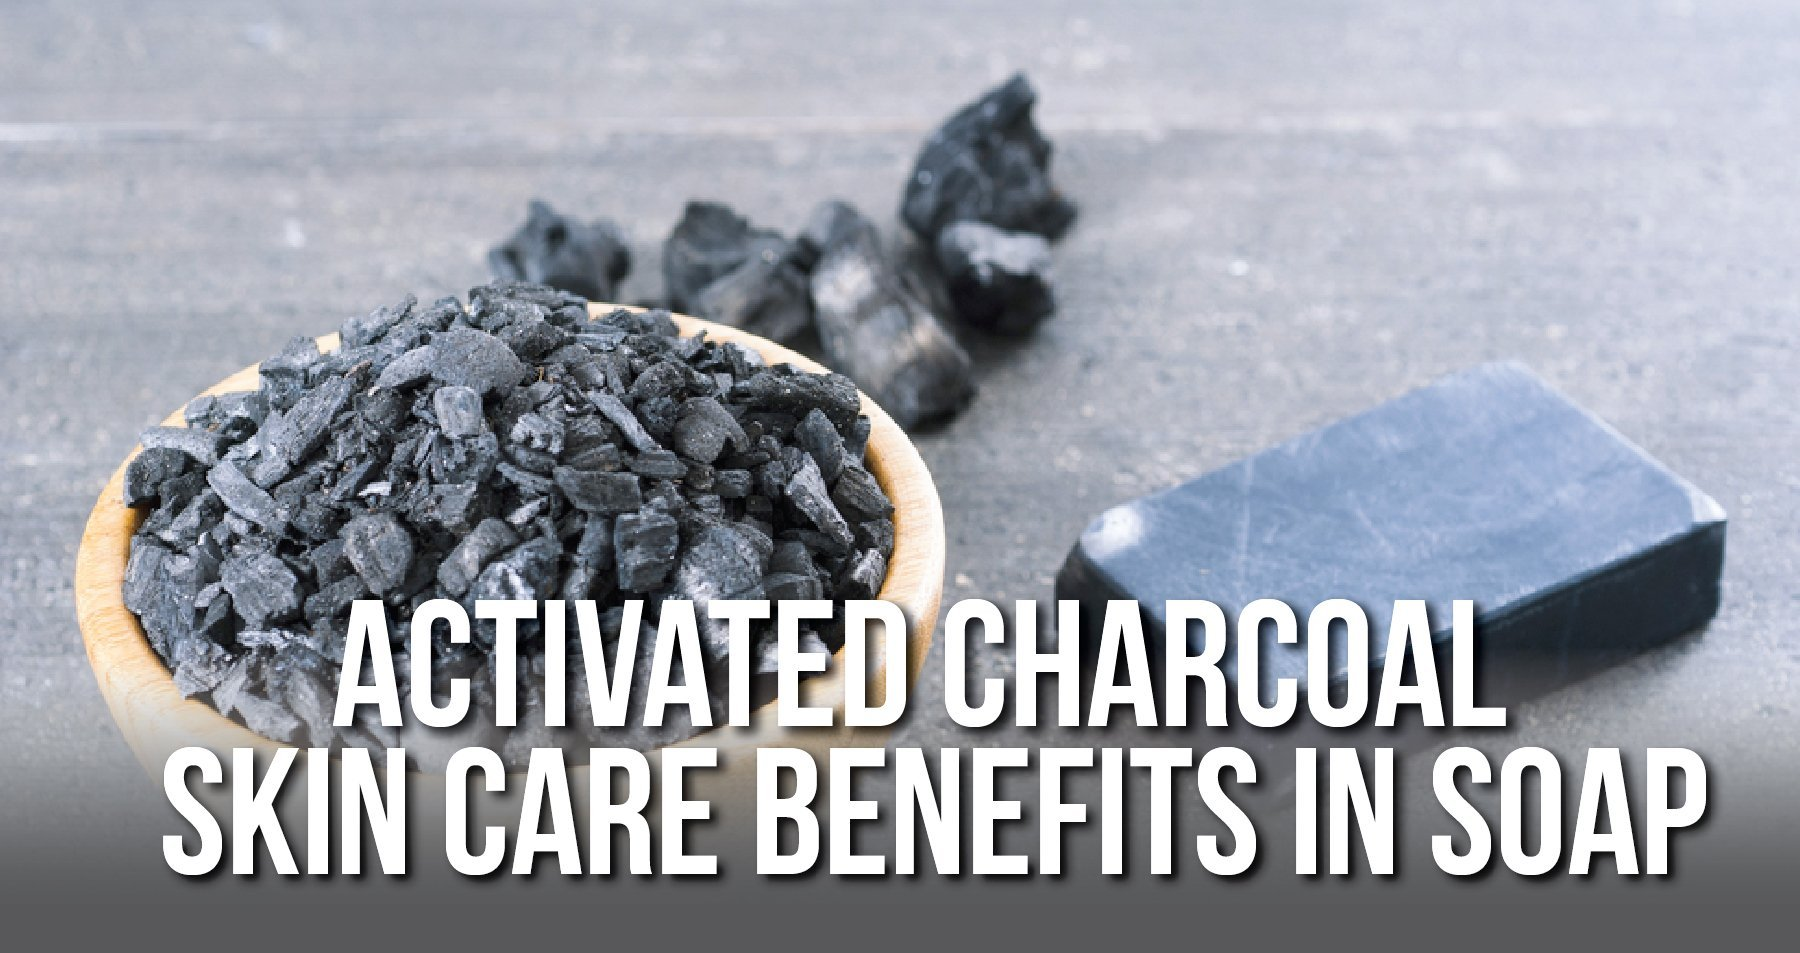 Detoxifying Activated Charcoal Skin Benefits | iHeart Nature